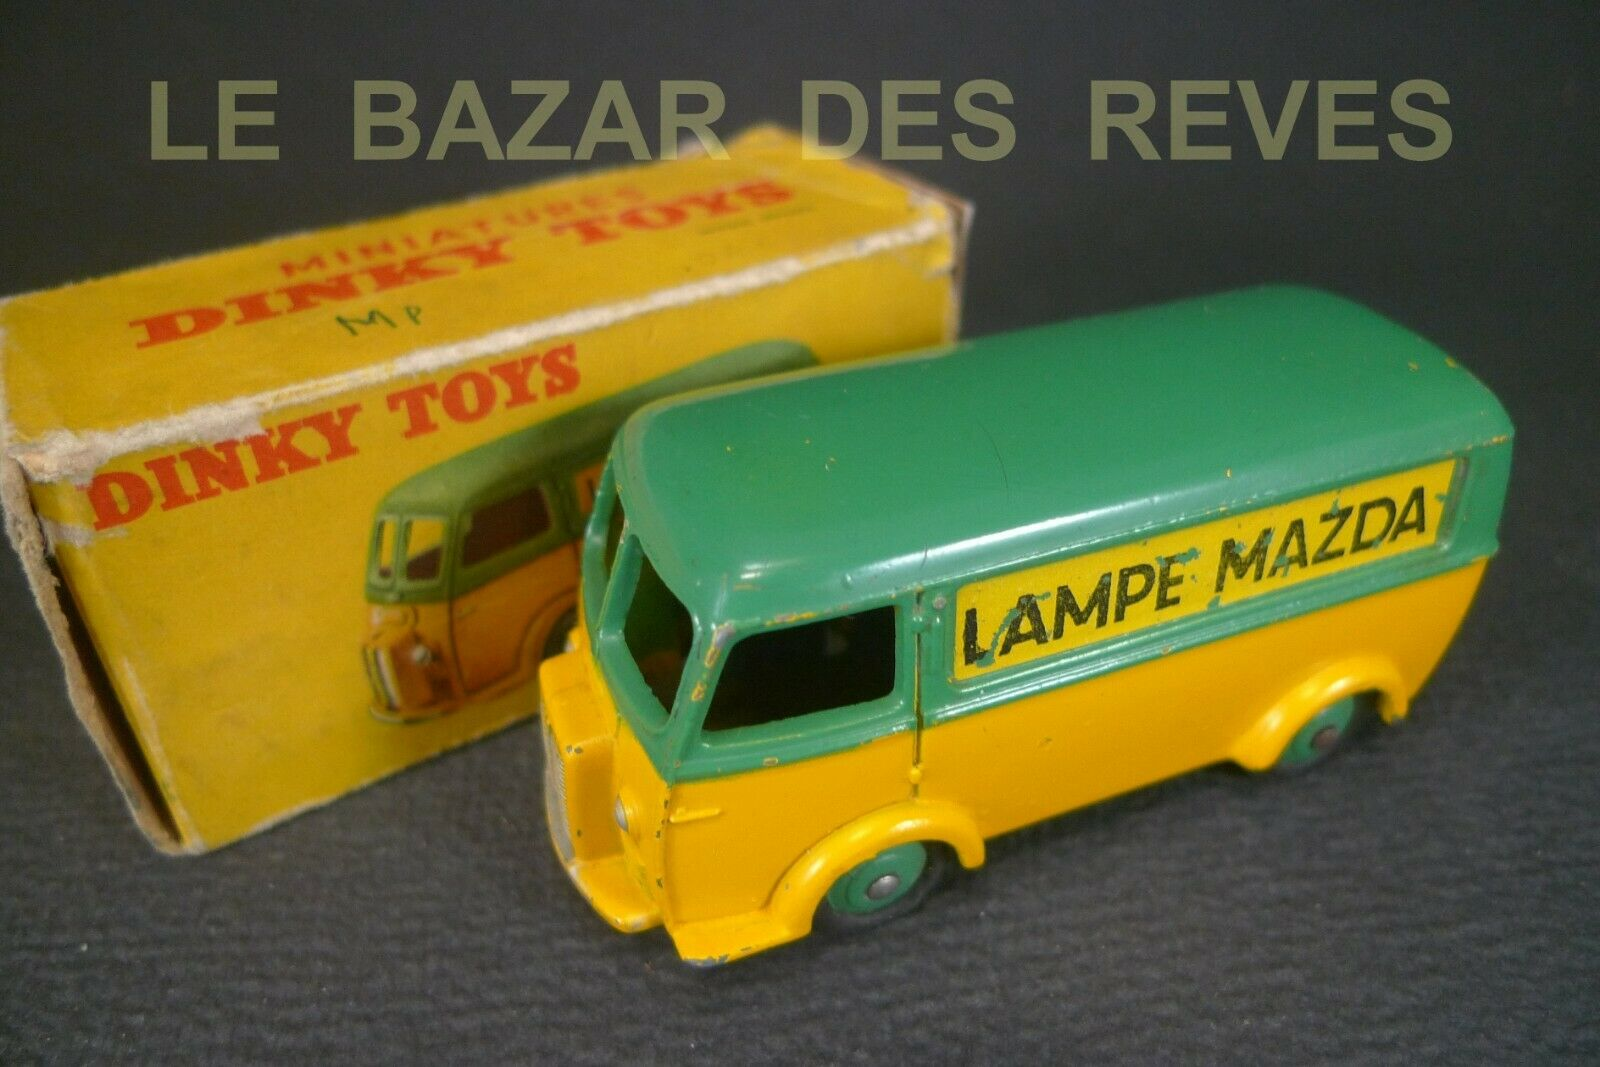 DINKY TOYS FRANCE. PEUGEOT D3A  LAMPE MAZDA . REF. 25 B. +Boite.